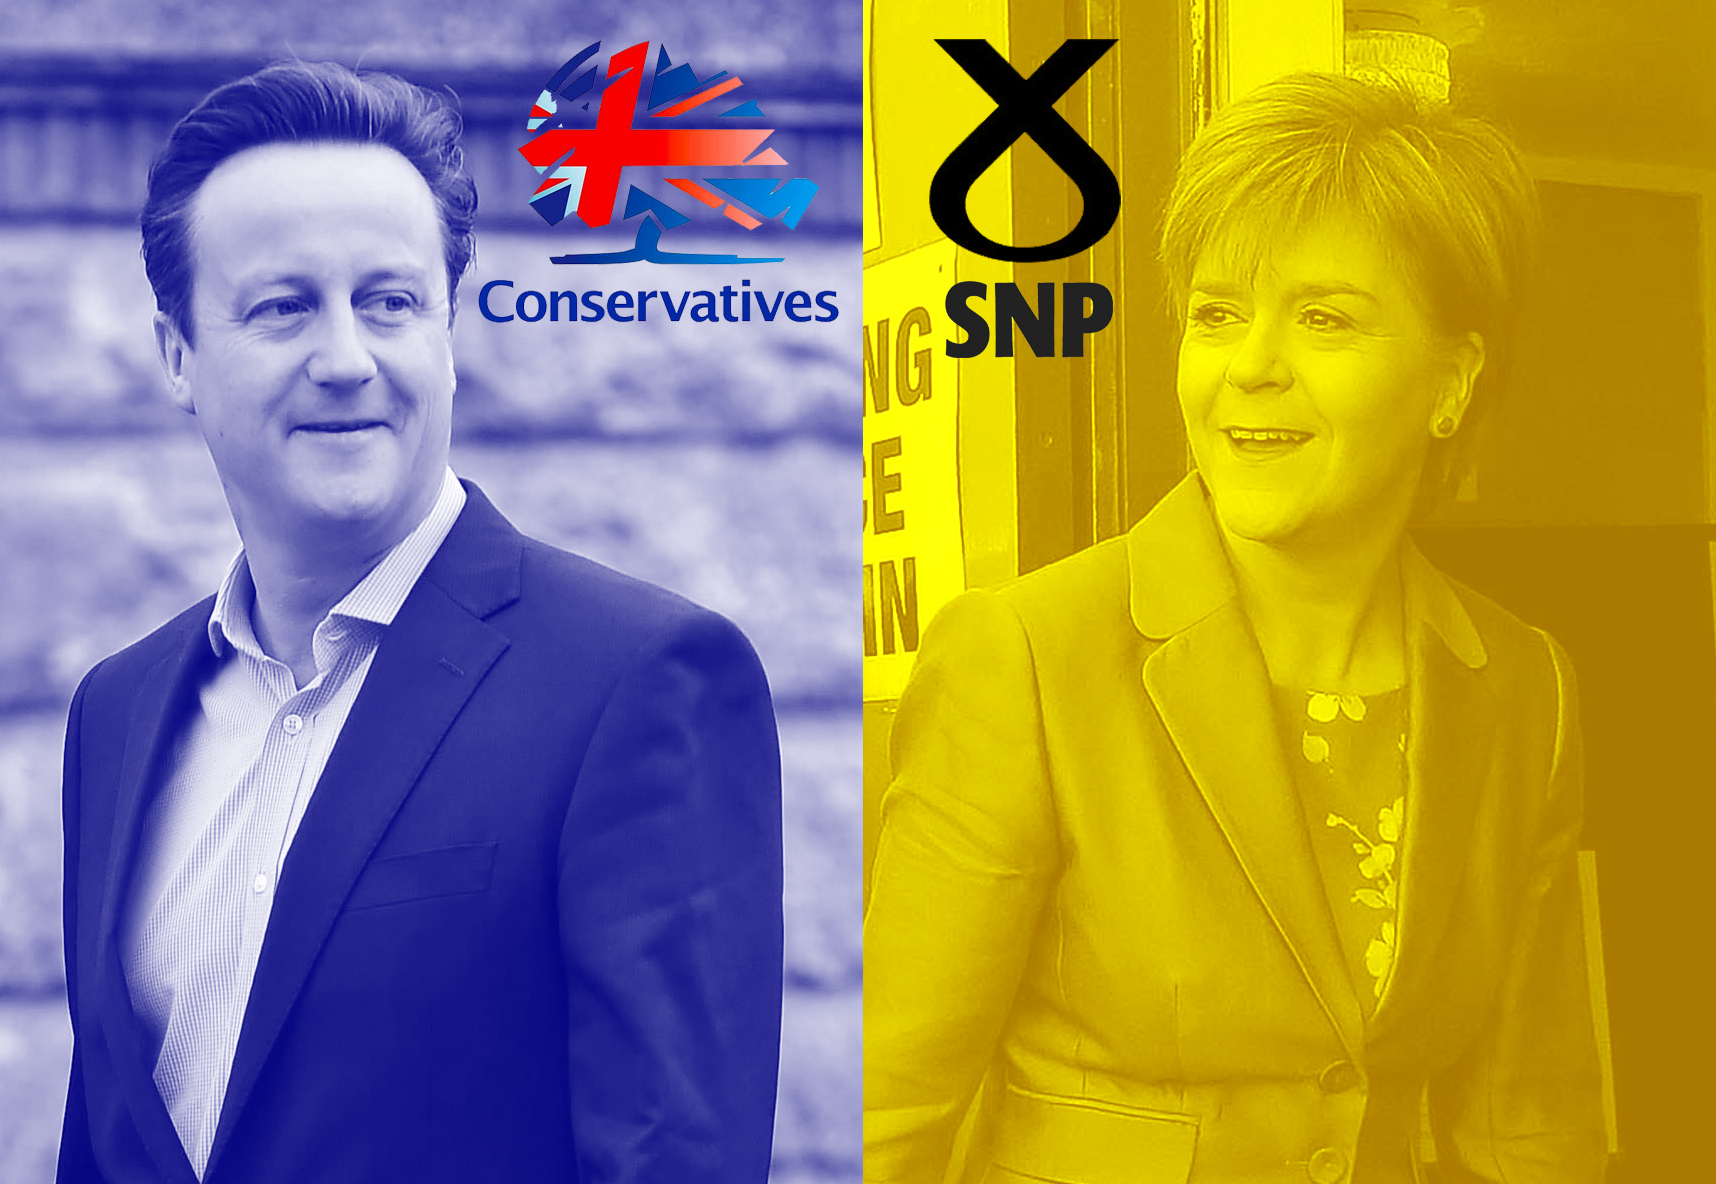 The 10pm exit poll gave good news to both Cameron and Sturgeon